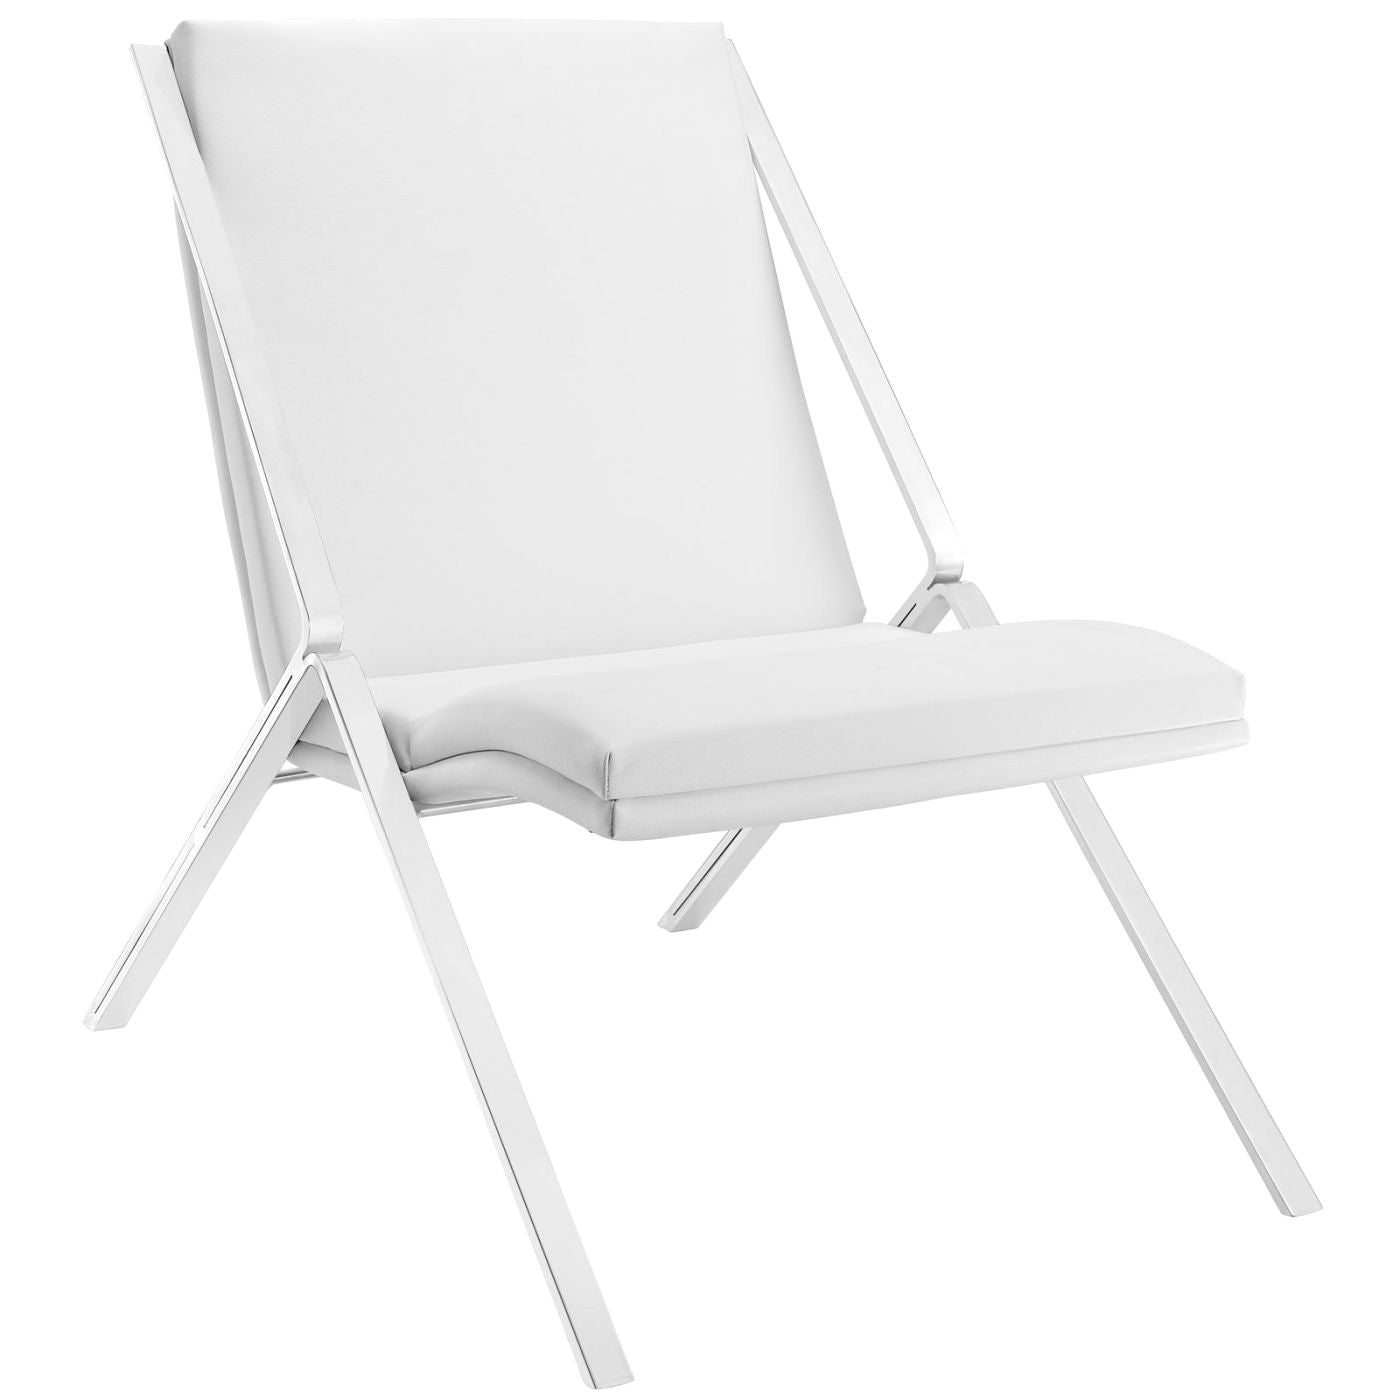 Swing Upholstered Faux Leather Lounge Chair White ...